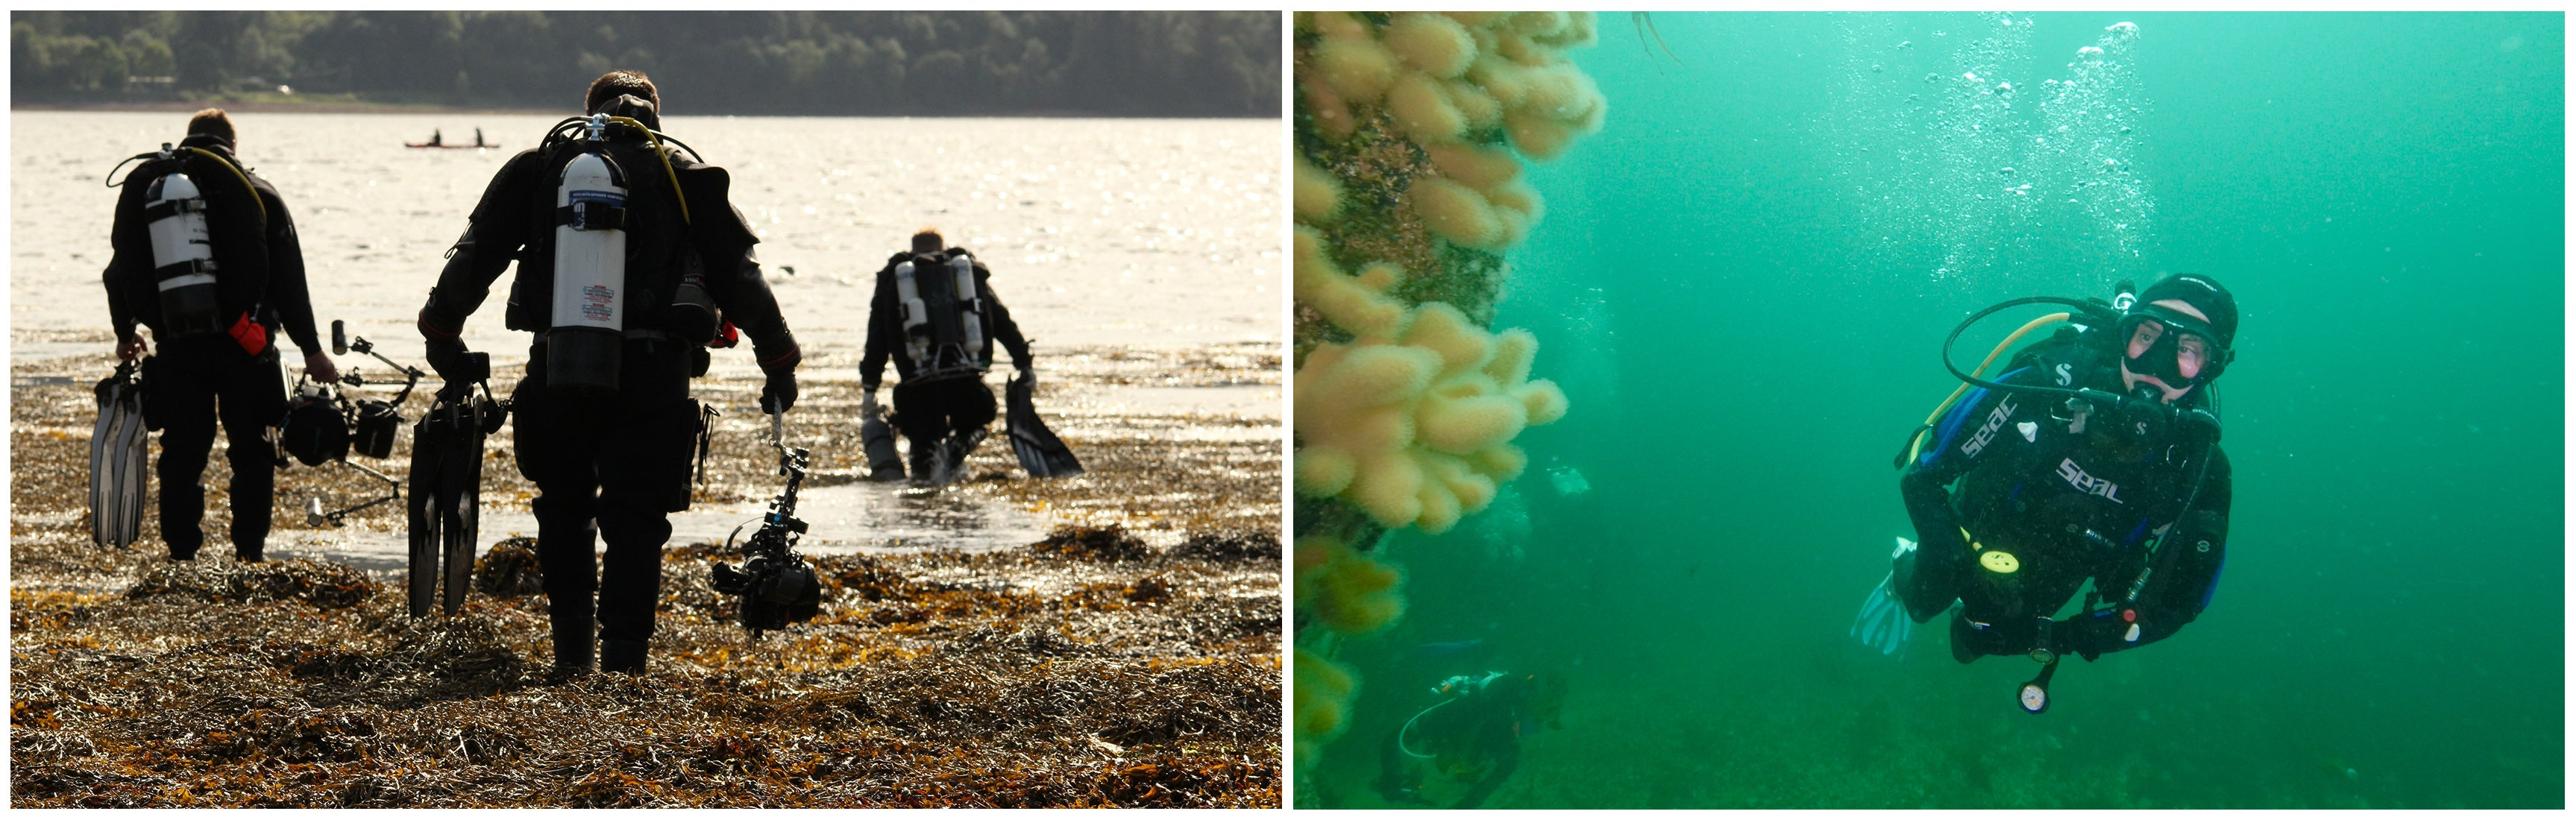 Left image of divers walking into the water, right image shows diver underwater with coral in the foreground